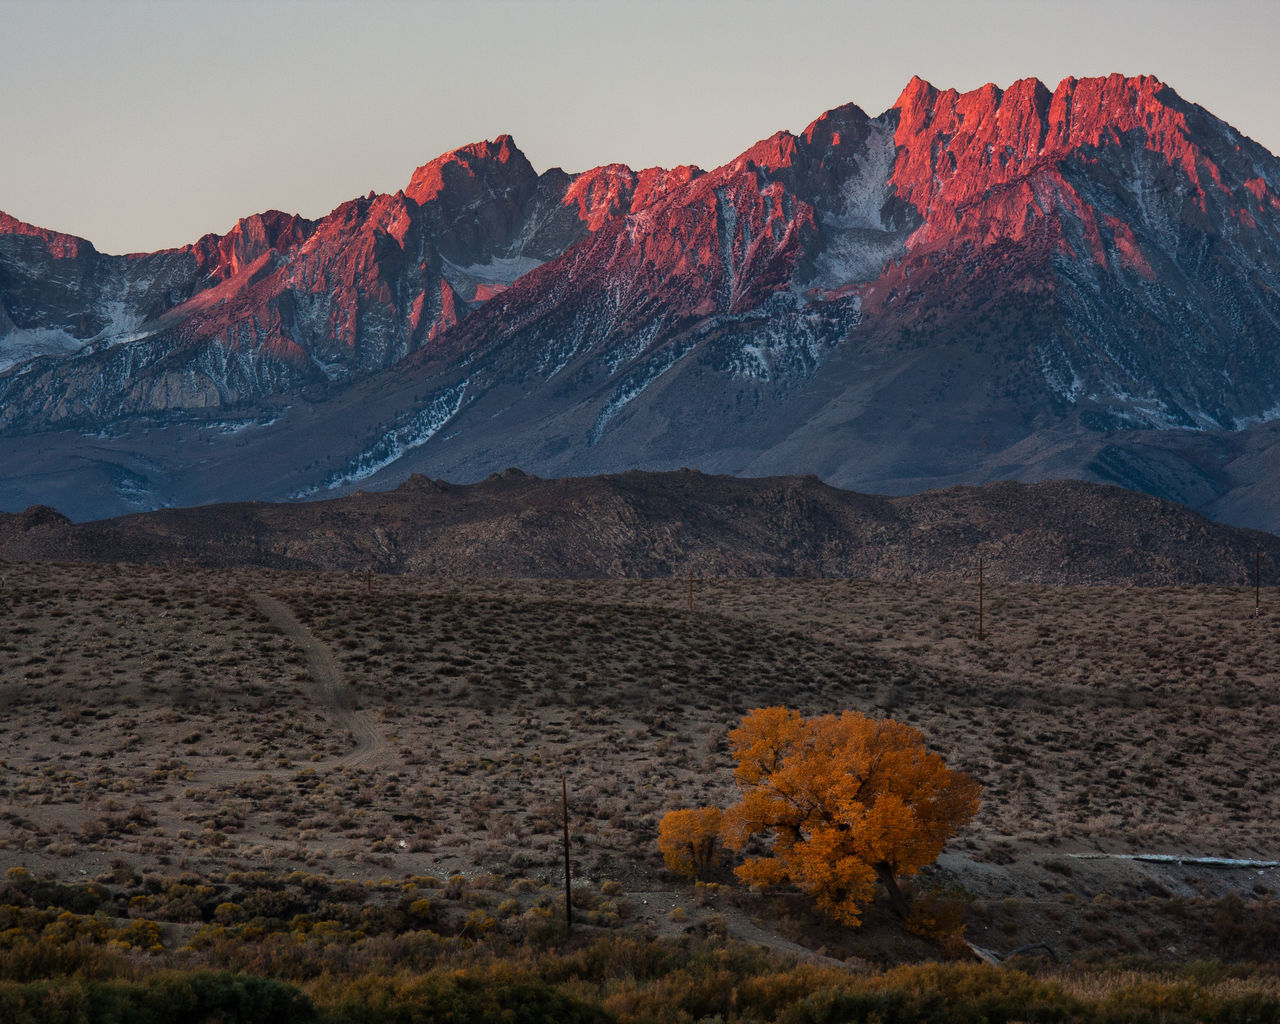 Sunrise on mountains near Bishop California Alpineglow Autumn Beauty In Nature California Majestic Mountain Mountain Peak Mountain Range Mountains Nature Non-urban Scene Outdoors Owl Physical Geography Remote Rugged Scenics Seirra Sunrise Tranquil Scene